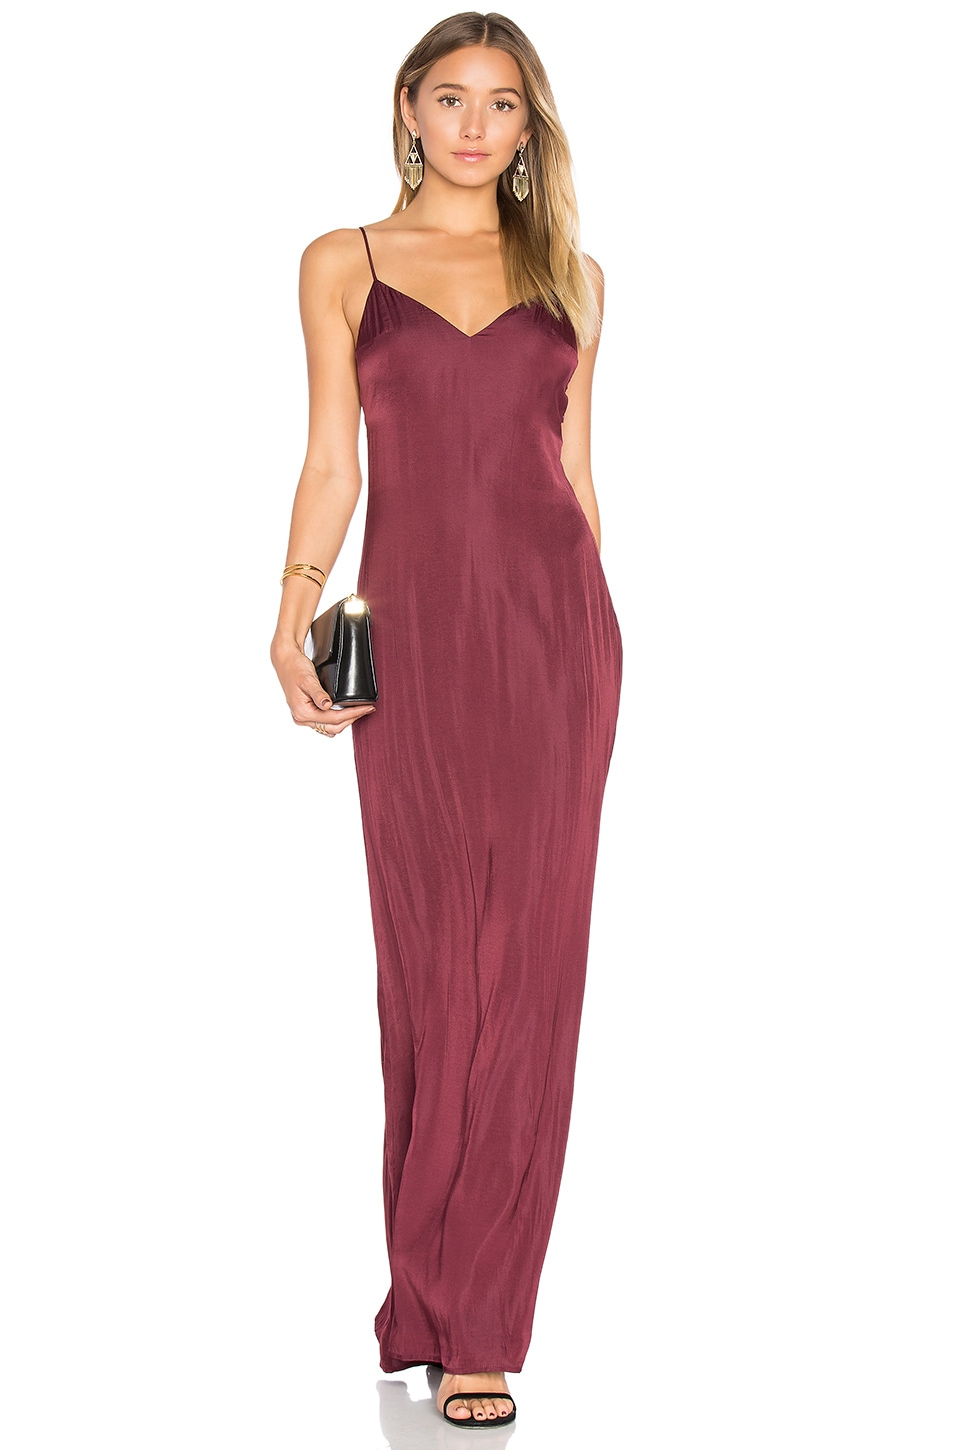 Lovers + Friends x REVOLVE The Revival Dress in Wine